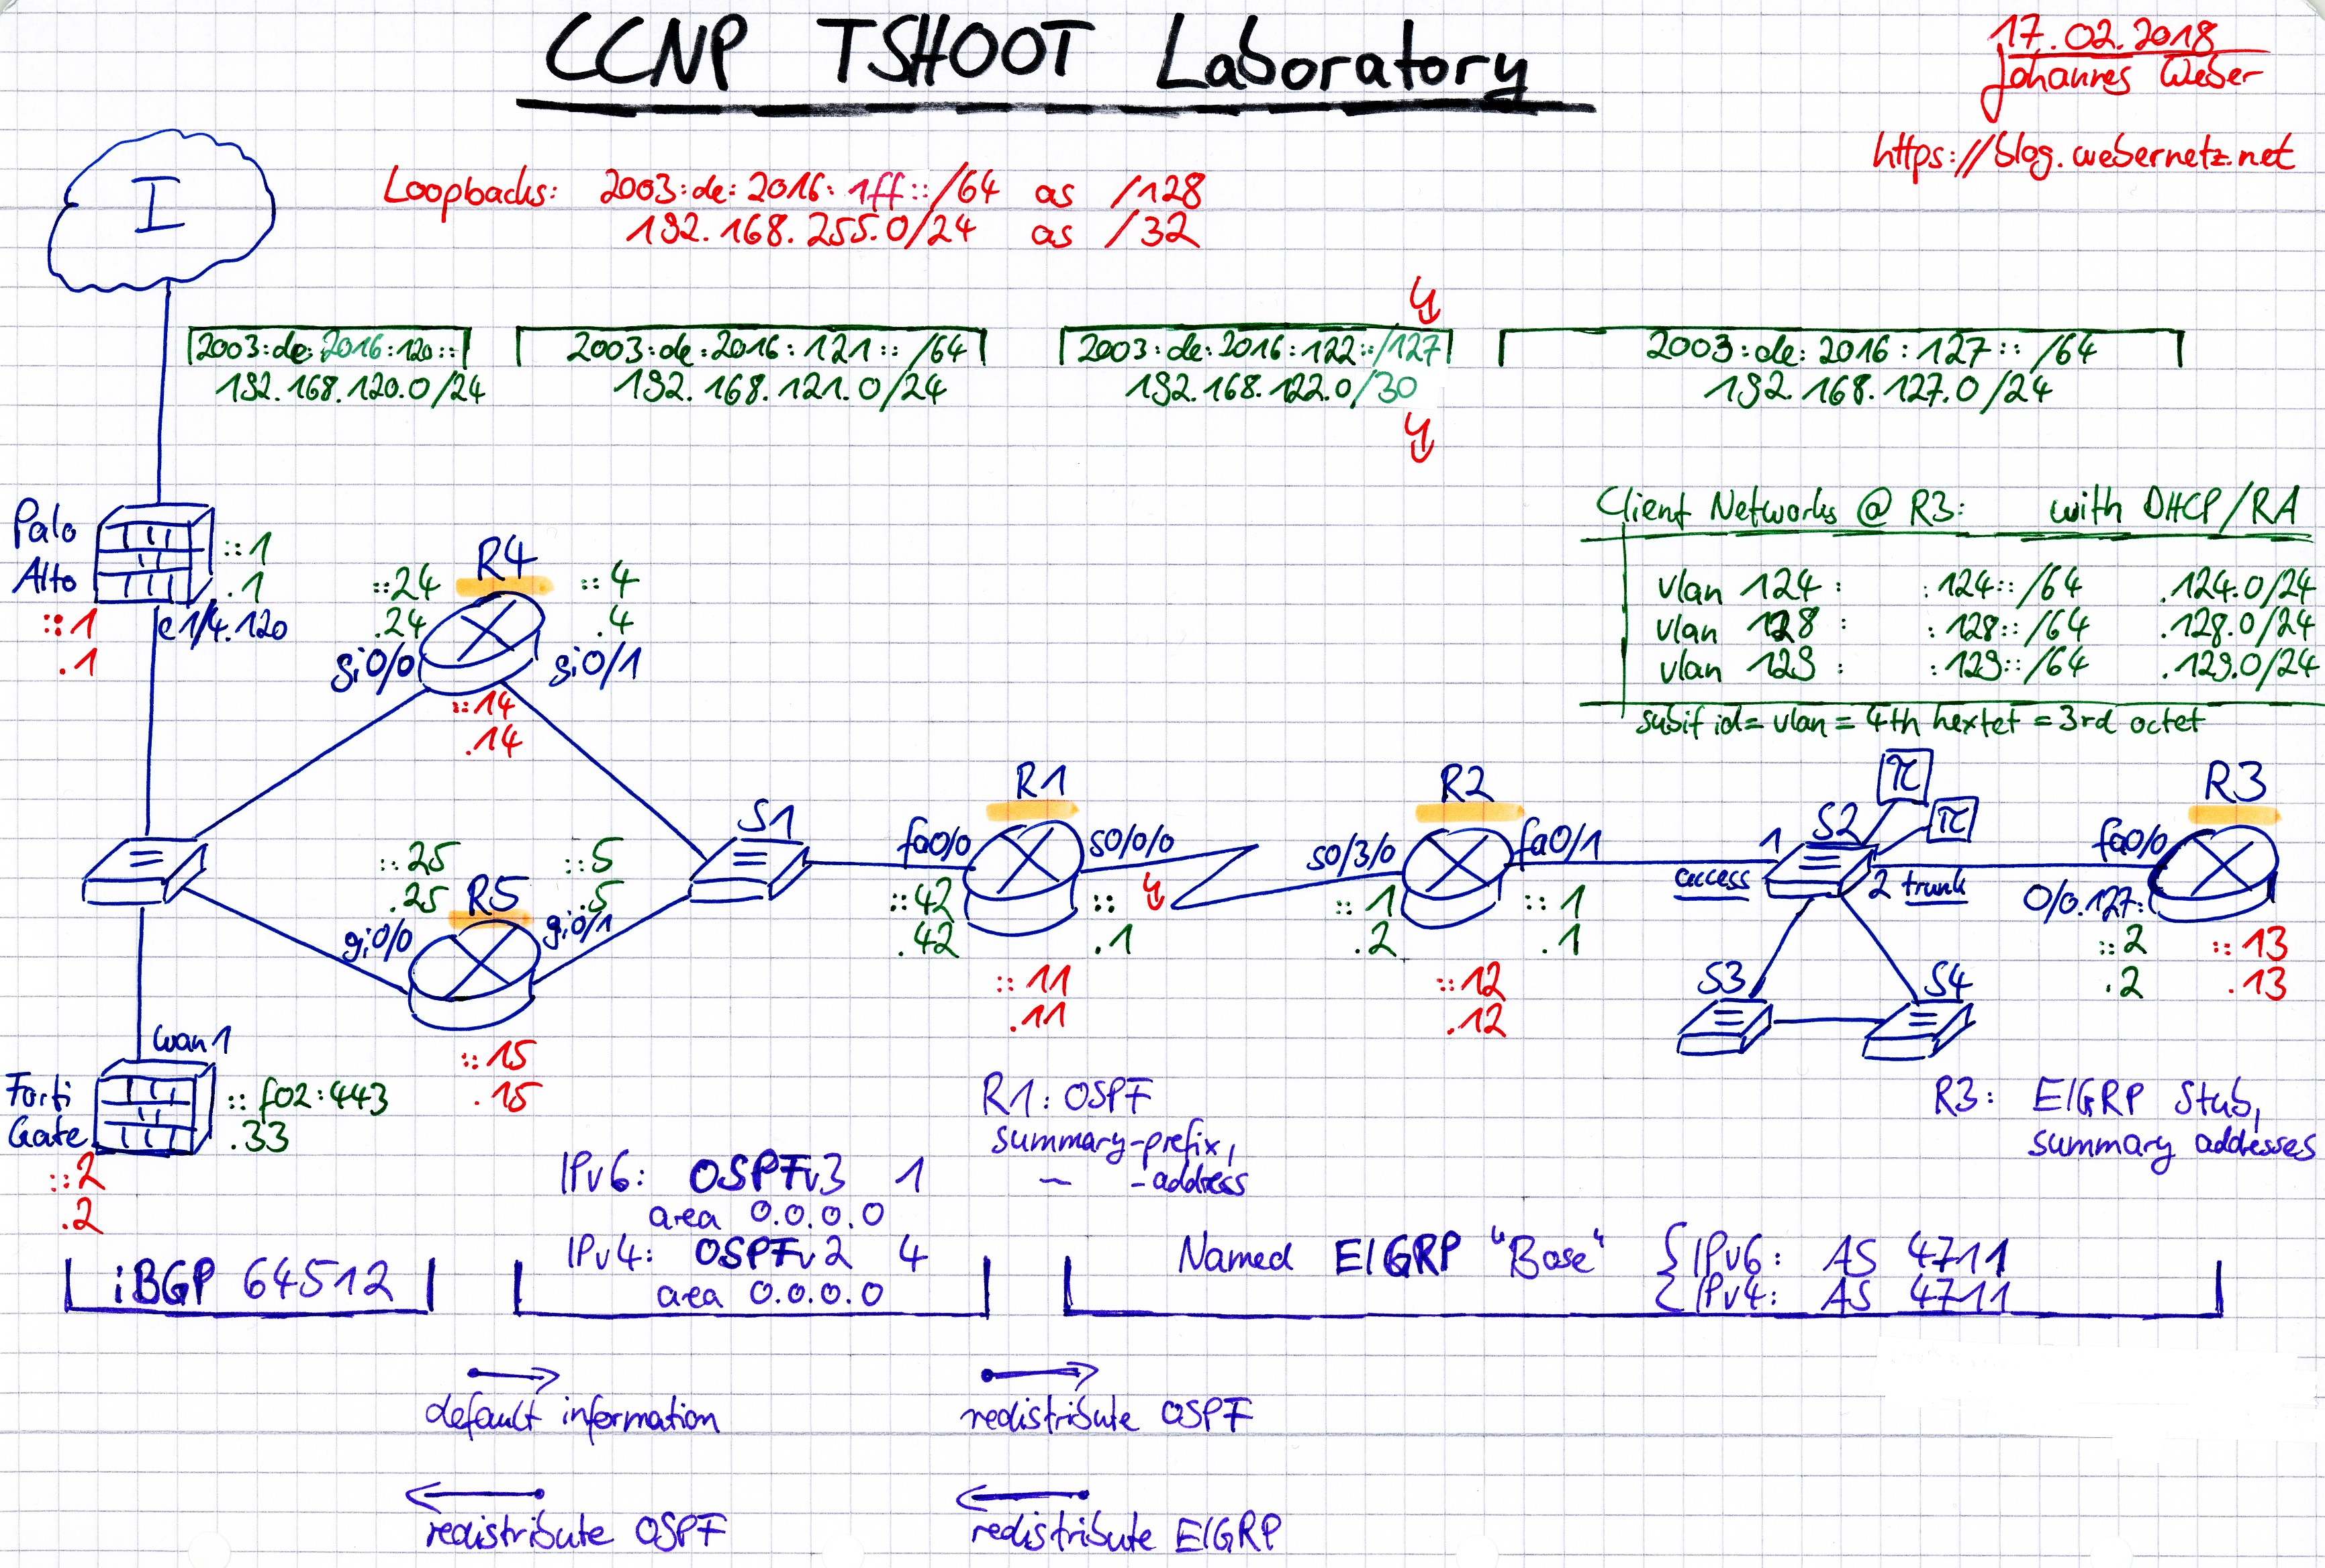 My CCNP TSHOOT Lab: The Overall Picture | Blog Webernetz net